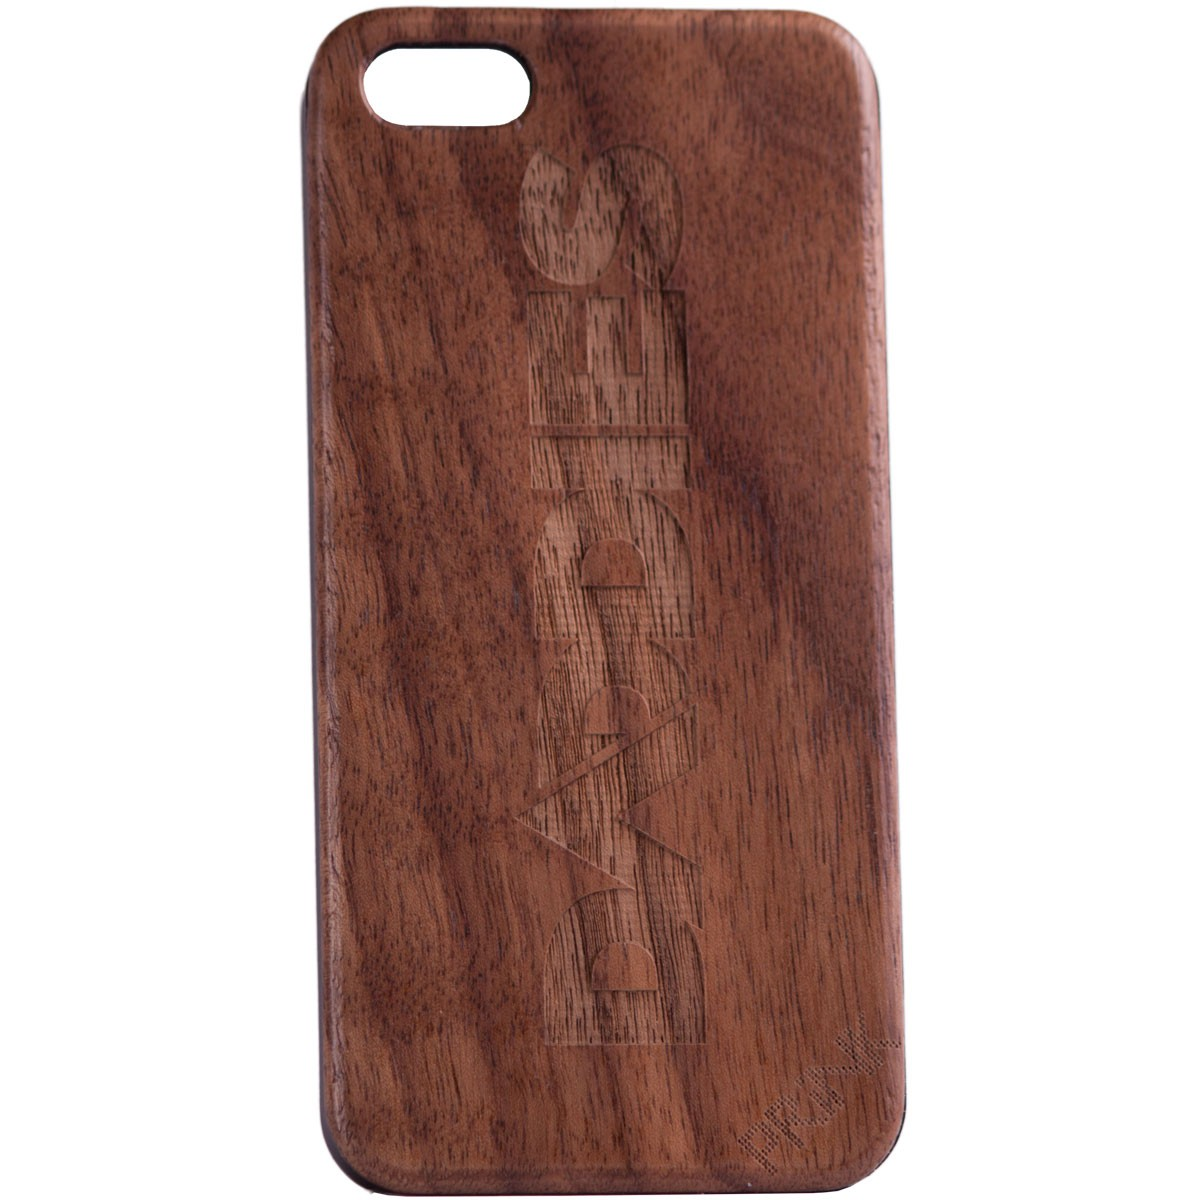 Daddies Board Shop iPhone 5 Hard Case - Walnut